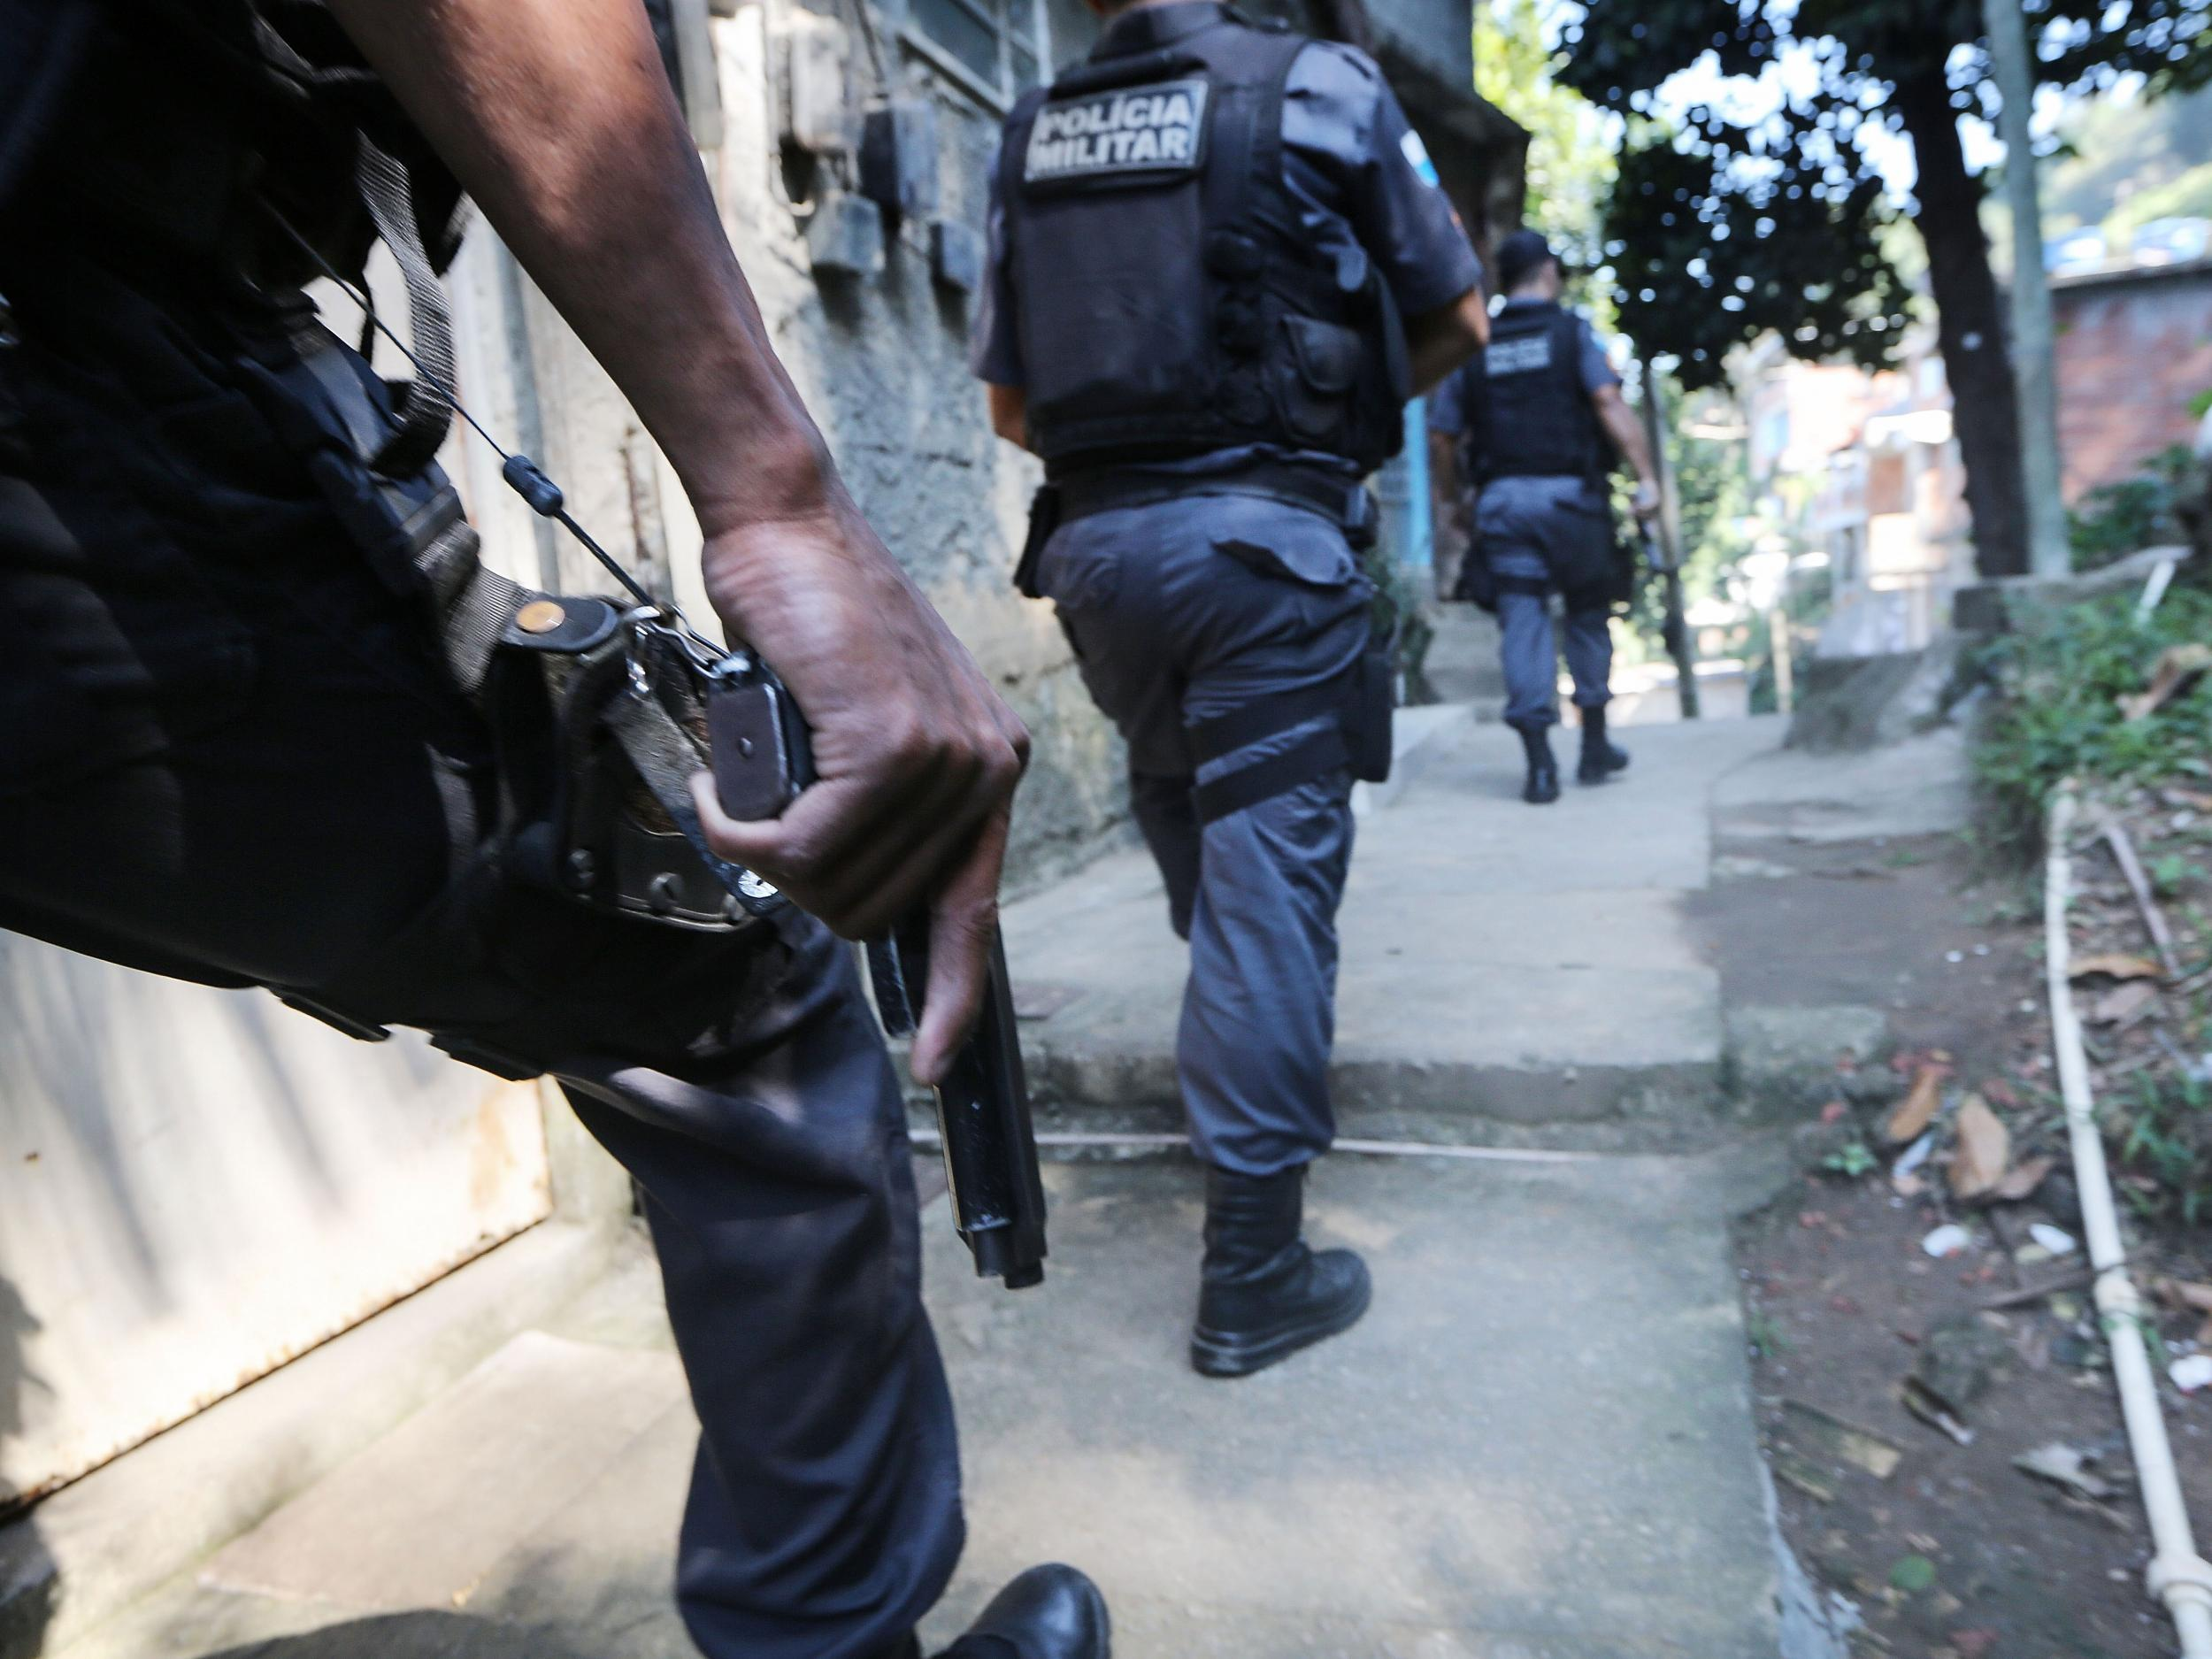 Brazil breaks own record for number of murders in single year as deaths hit 63,880